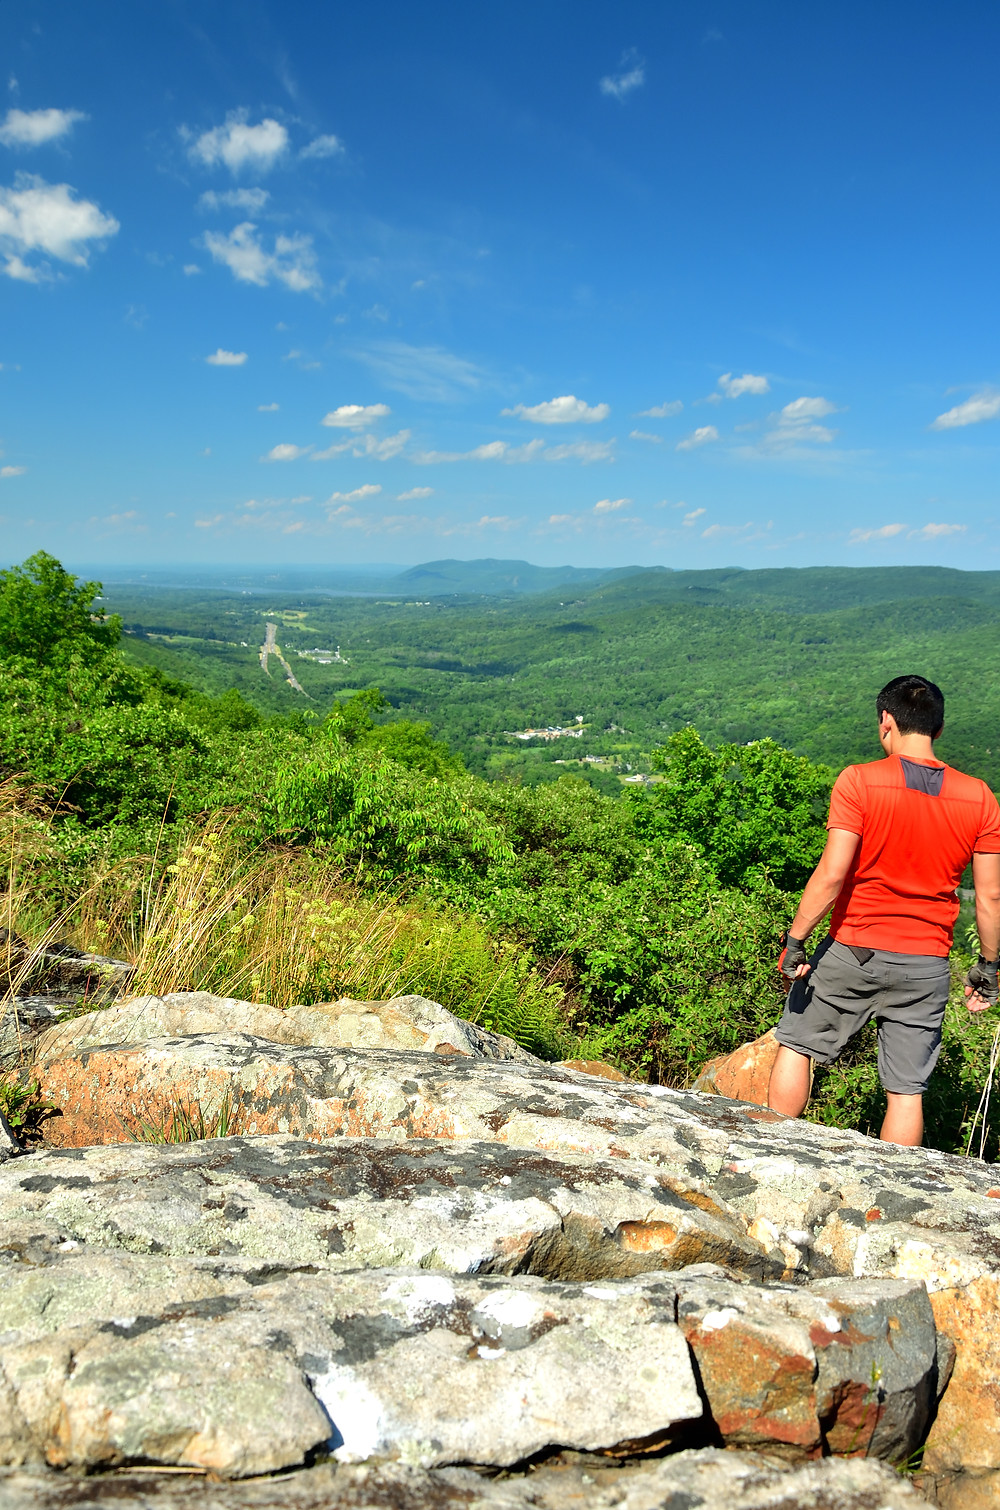 One last look at the main High Knob overlook